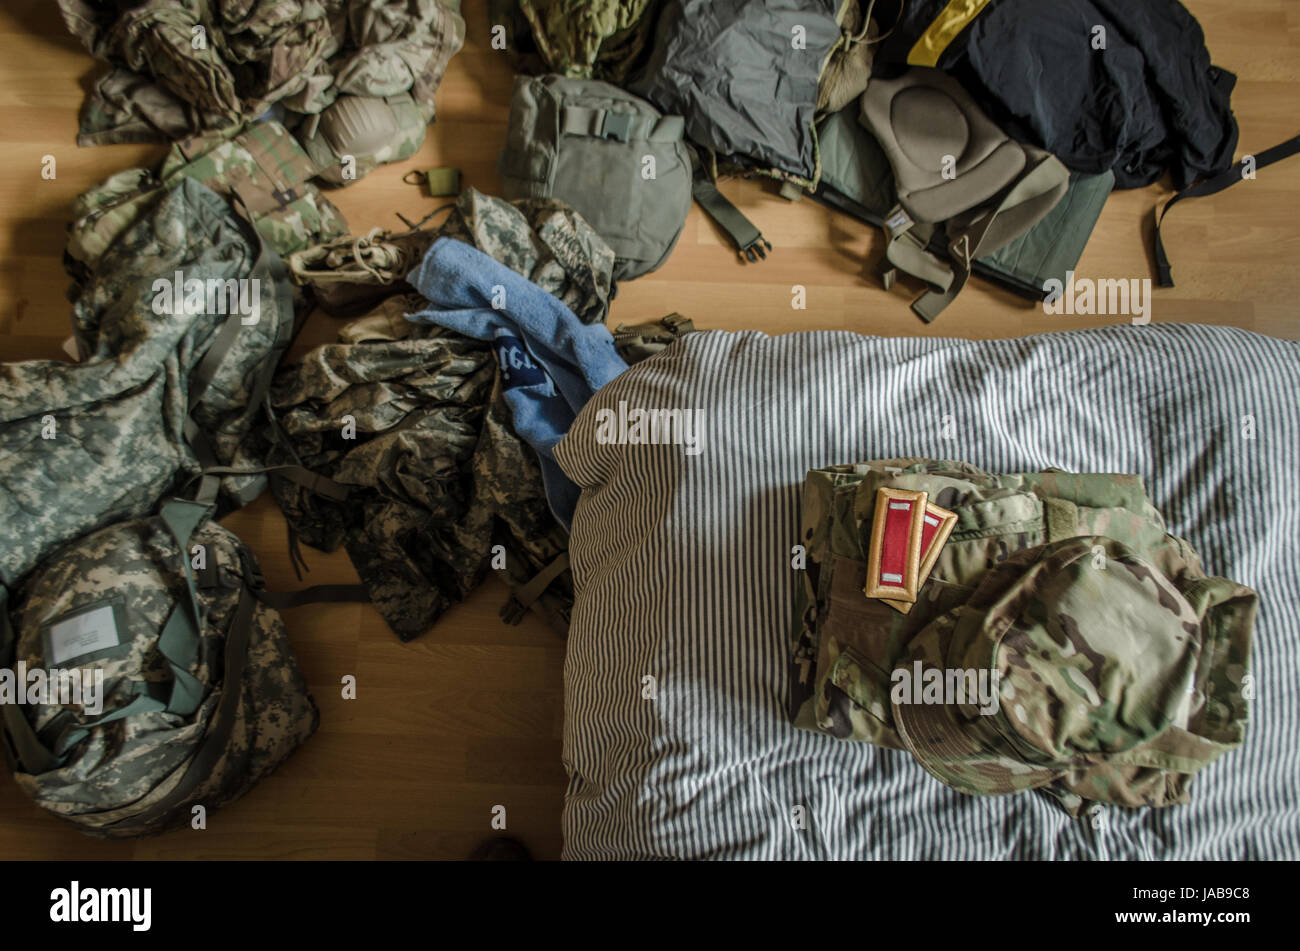 US military uniform scattered on a bedroom floor Stock Photo